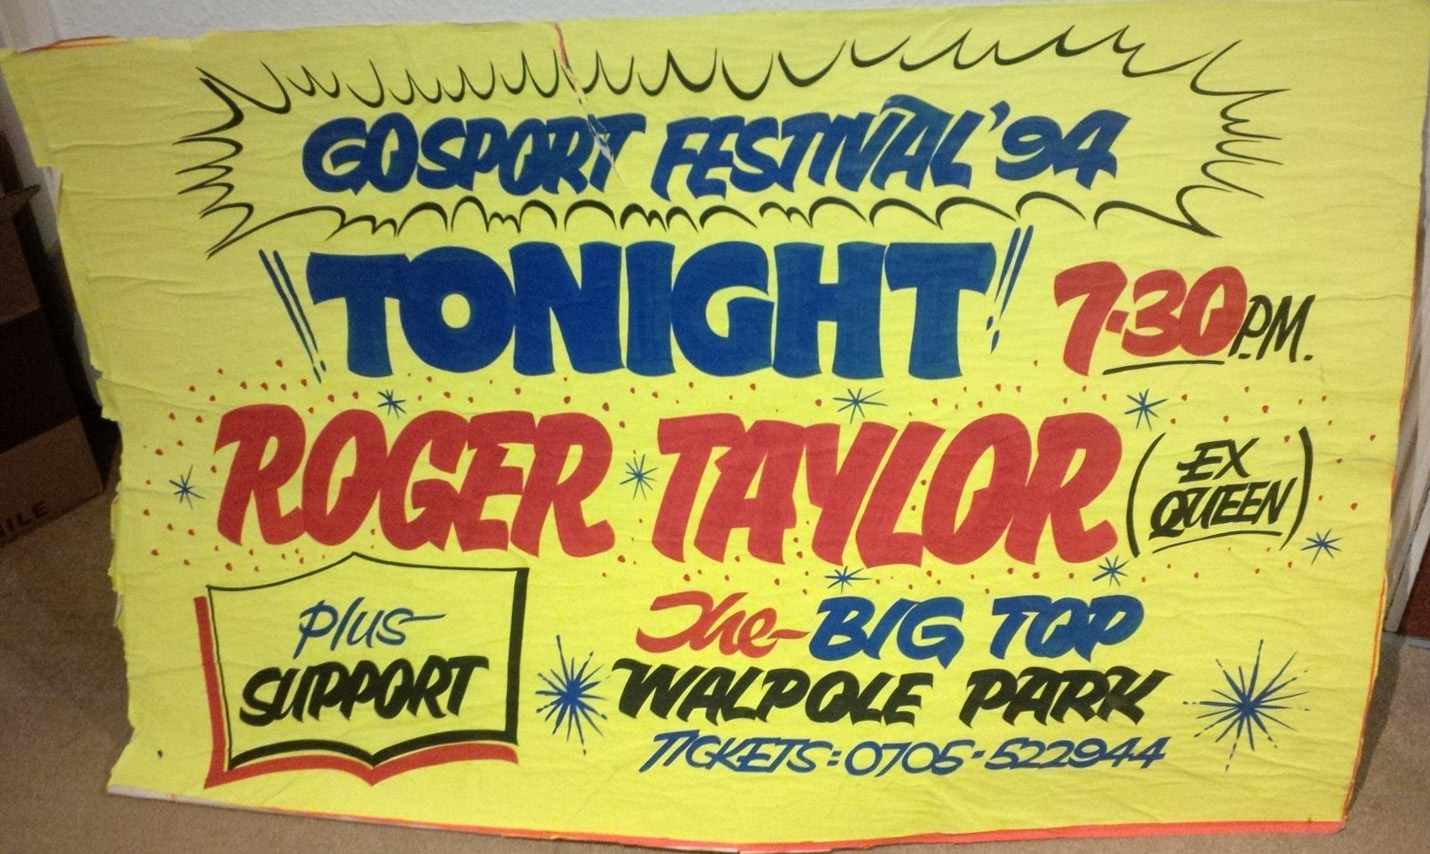 Roger Taylor at the Gosport festival on 28.07.1994